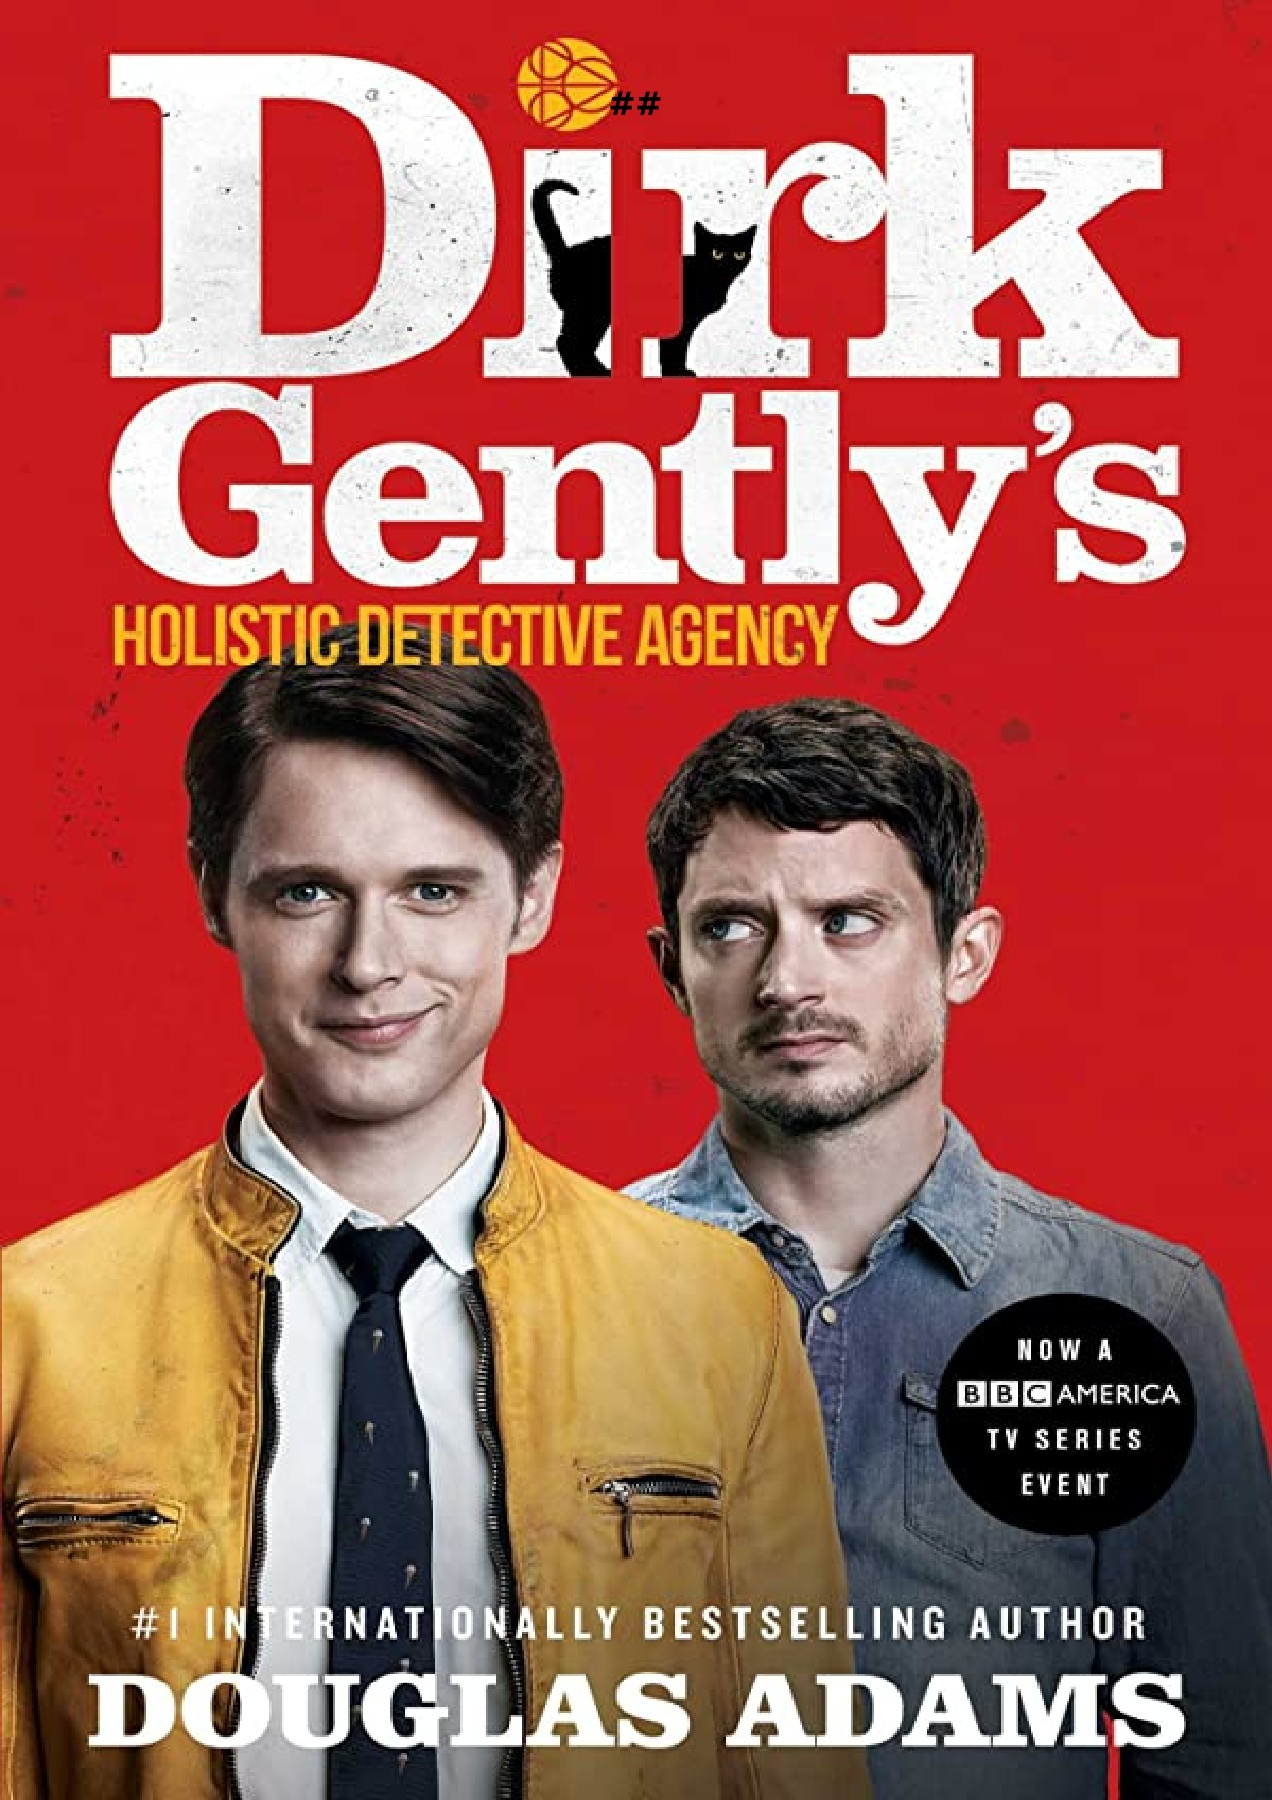 Pdf Download Dirk Gently S Holistic Detective Agency For Android Flip Ebook Pages 1 4 Anyflip Anyflip